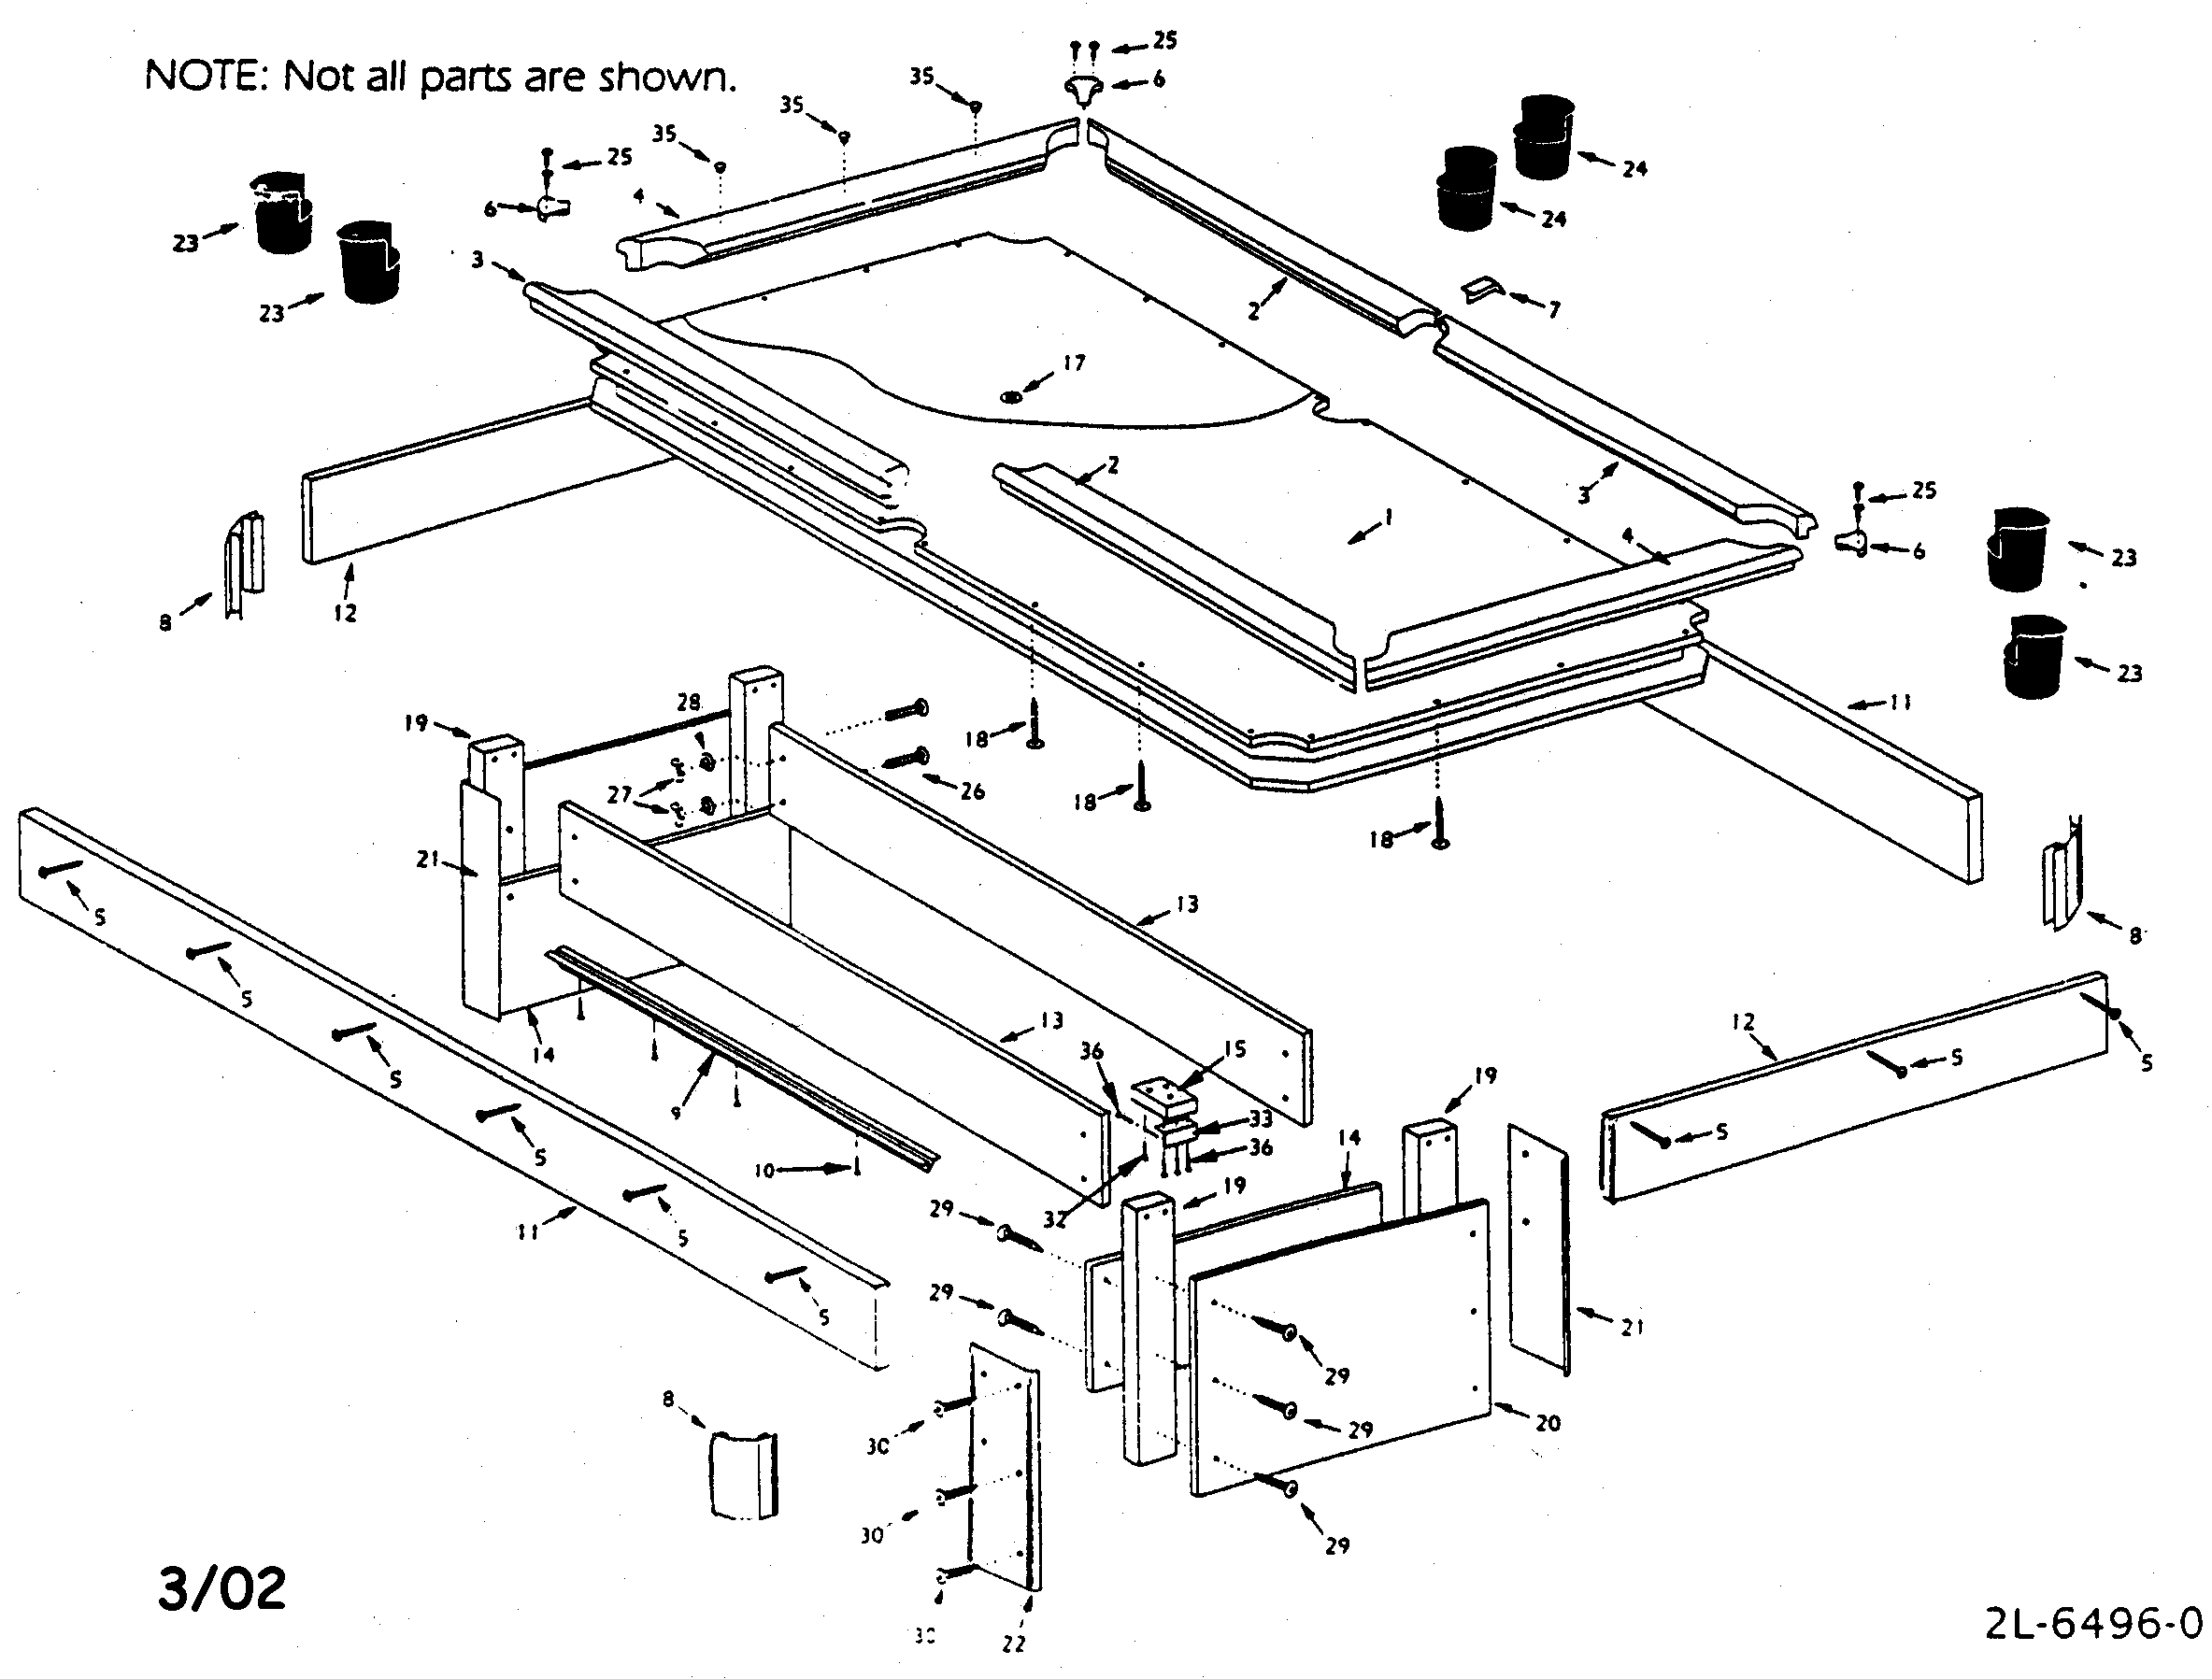 POOL TABLE Diagram & Parts List for Model 52725169 Sears